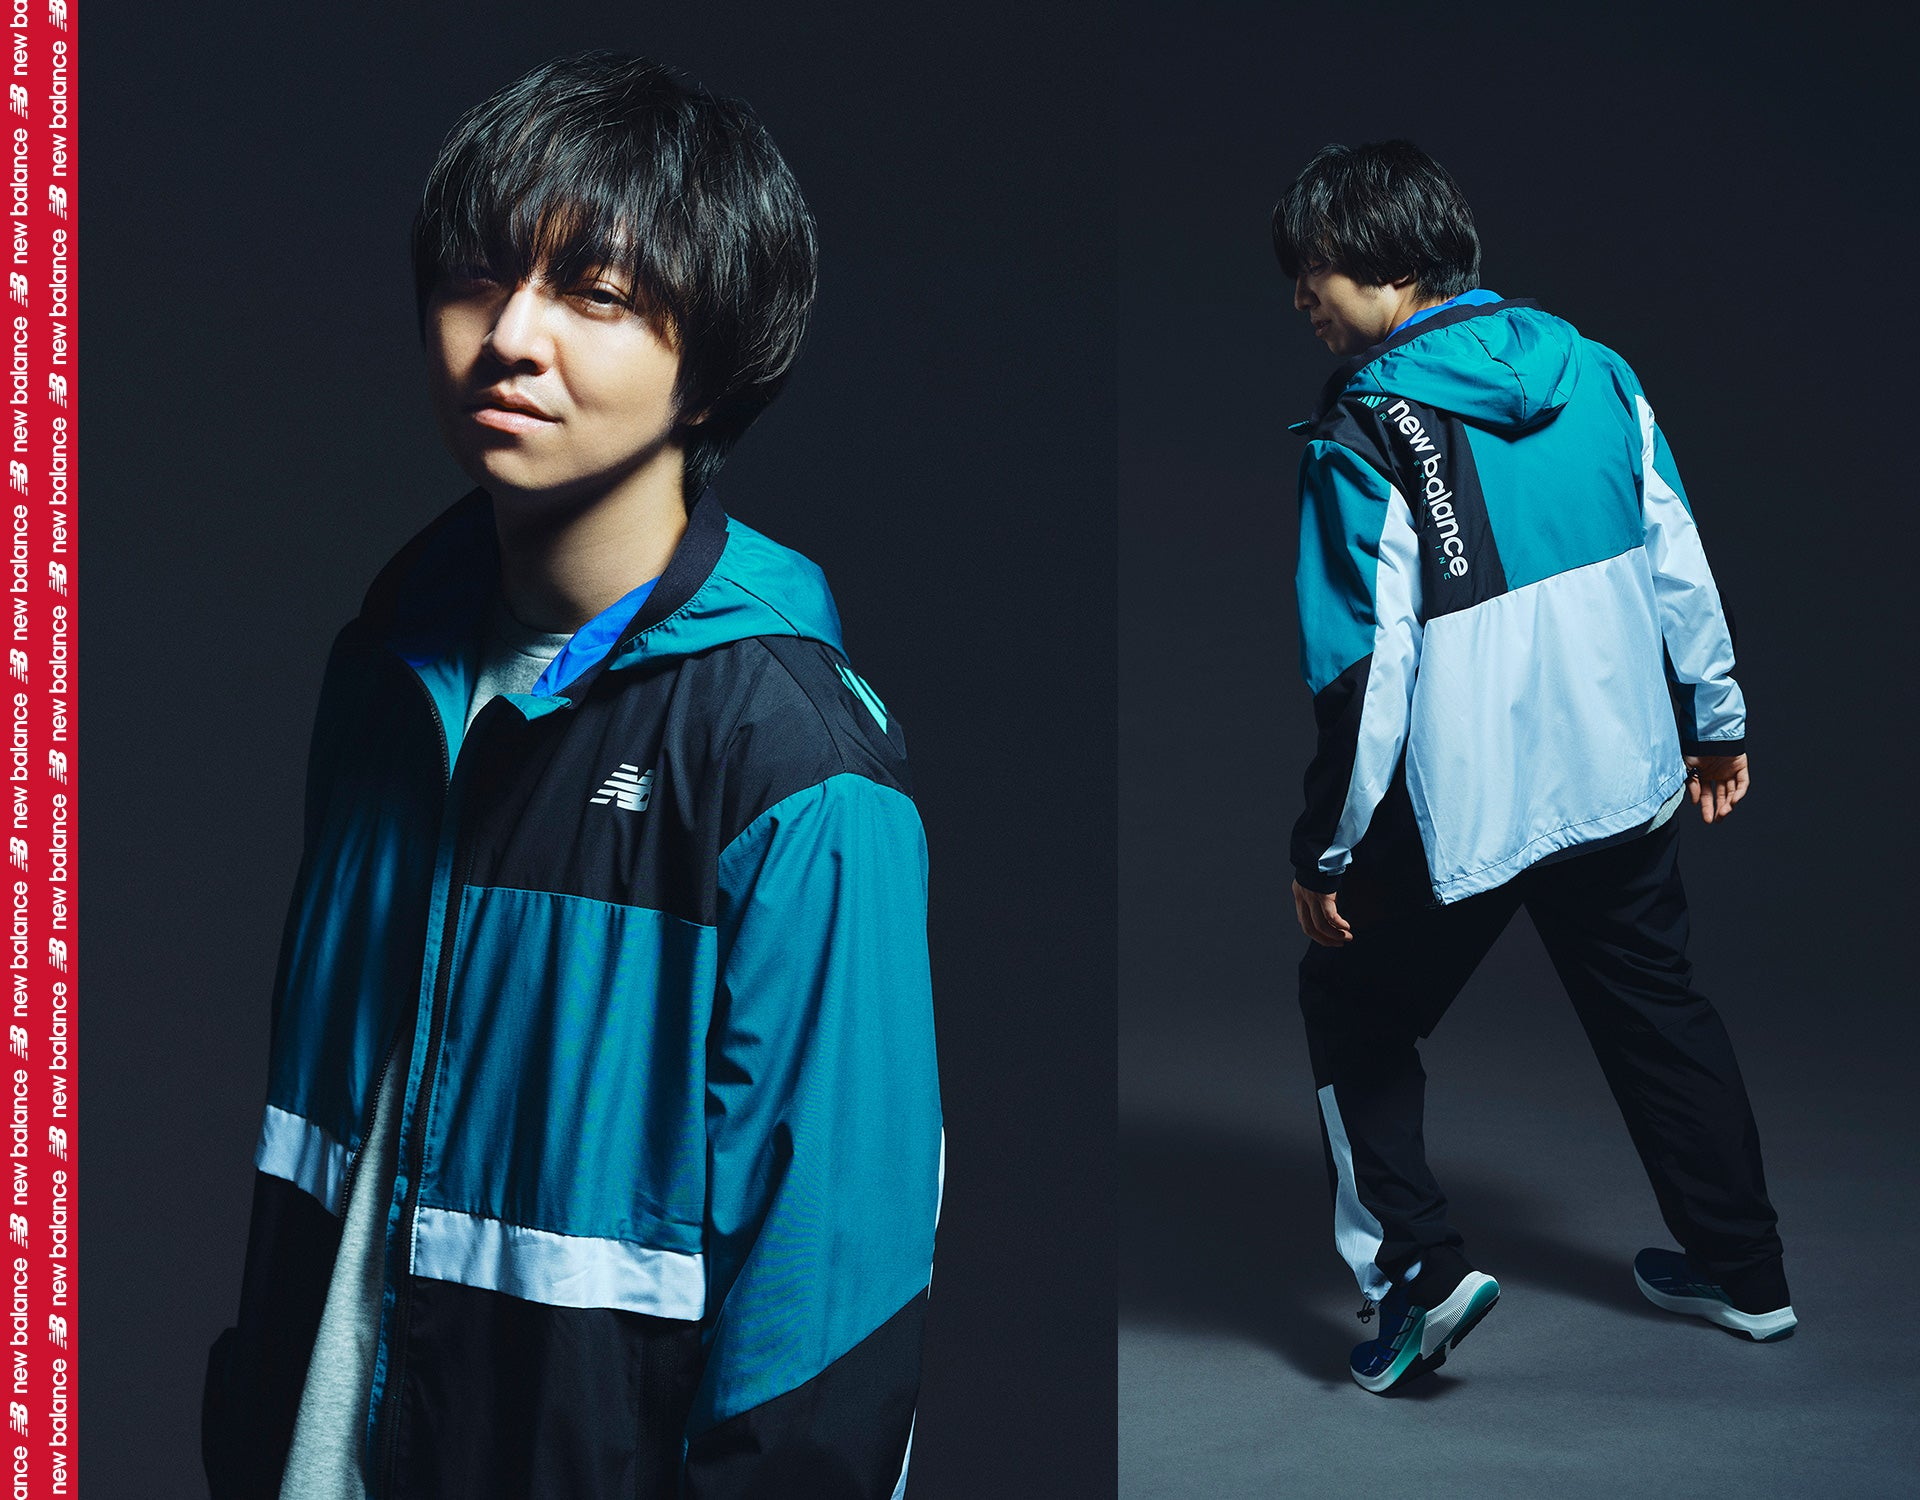 Outdoor Collection. This is Daichi Miura画像